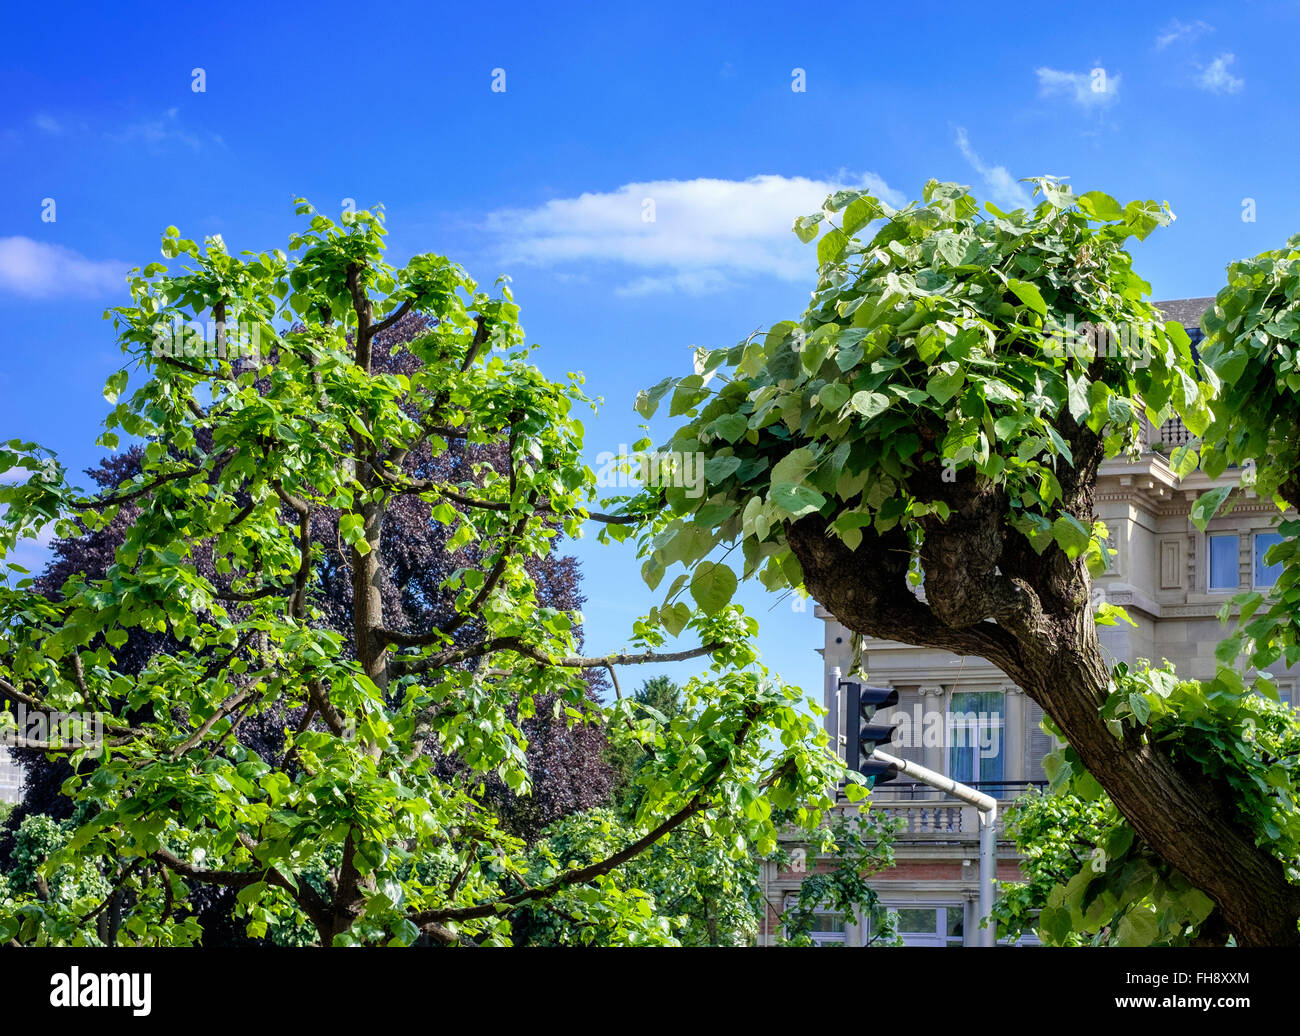 Linden Trees Stock Photos & Linden Trees Stock Images - Alamy